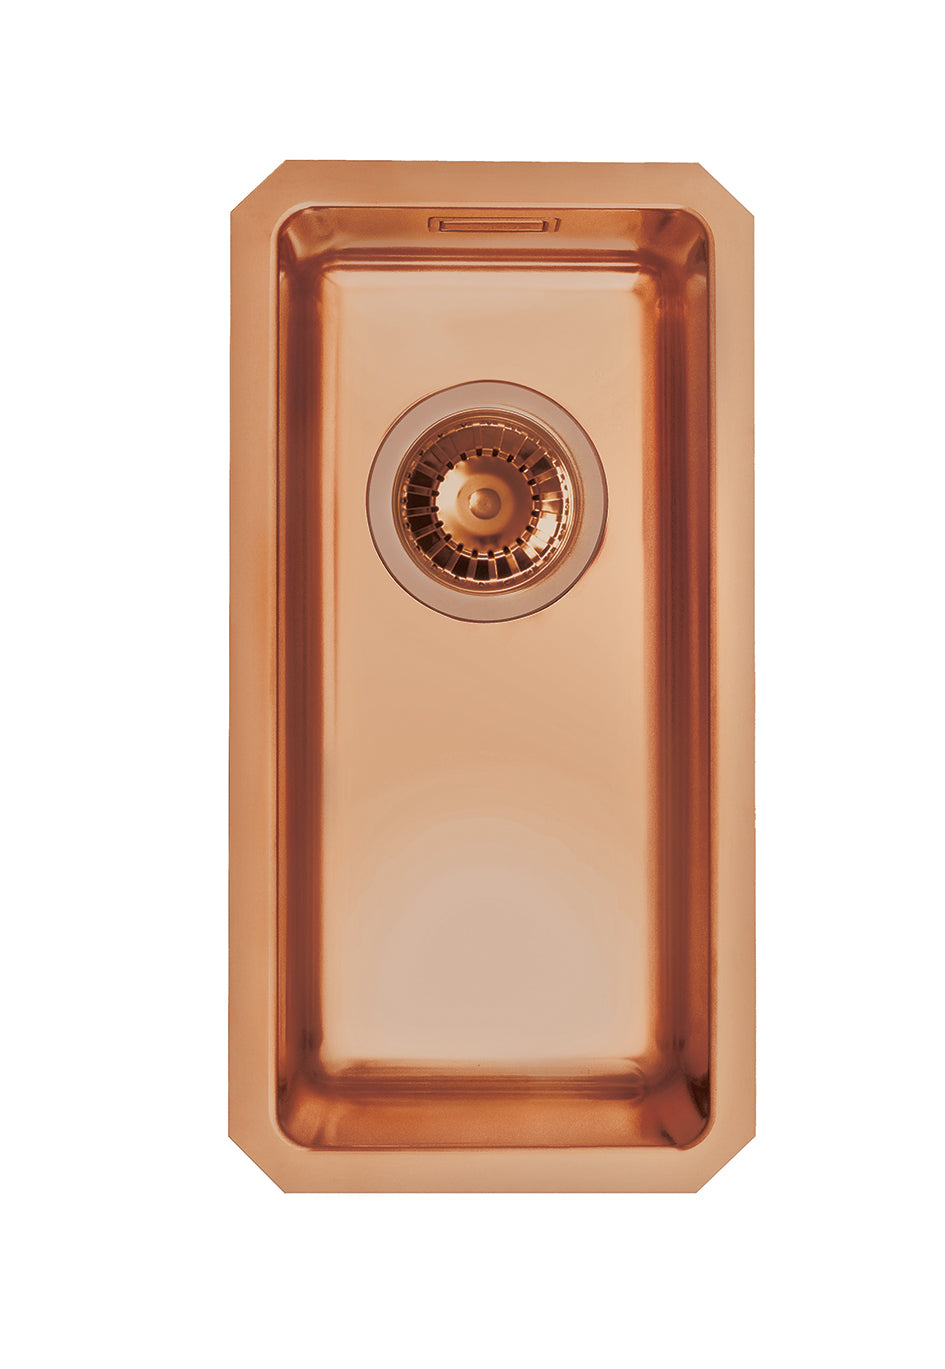 Alveus Monarch Kombino 10 Copper, undermount sink